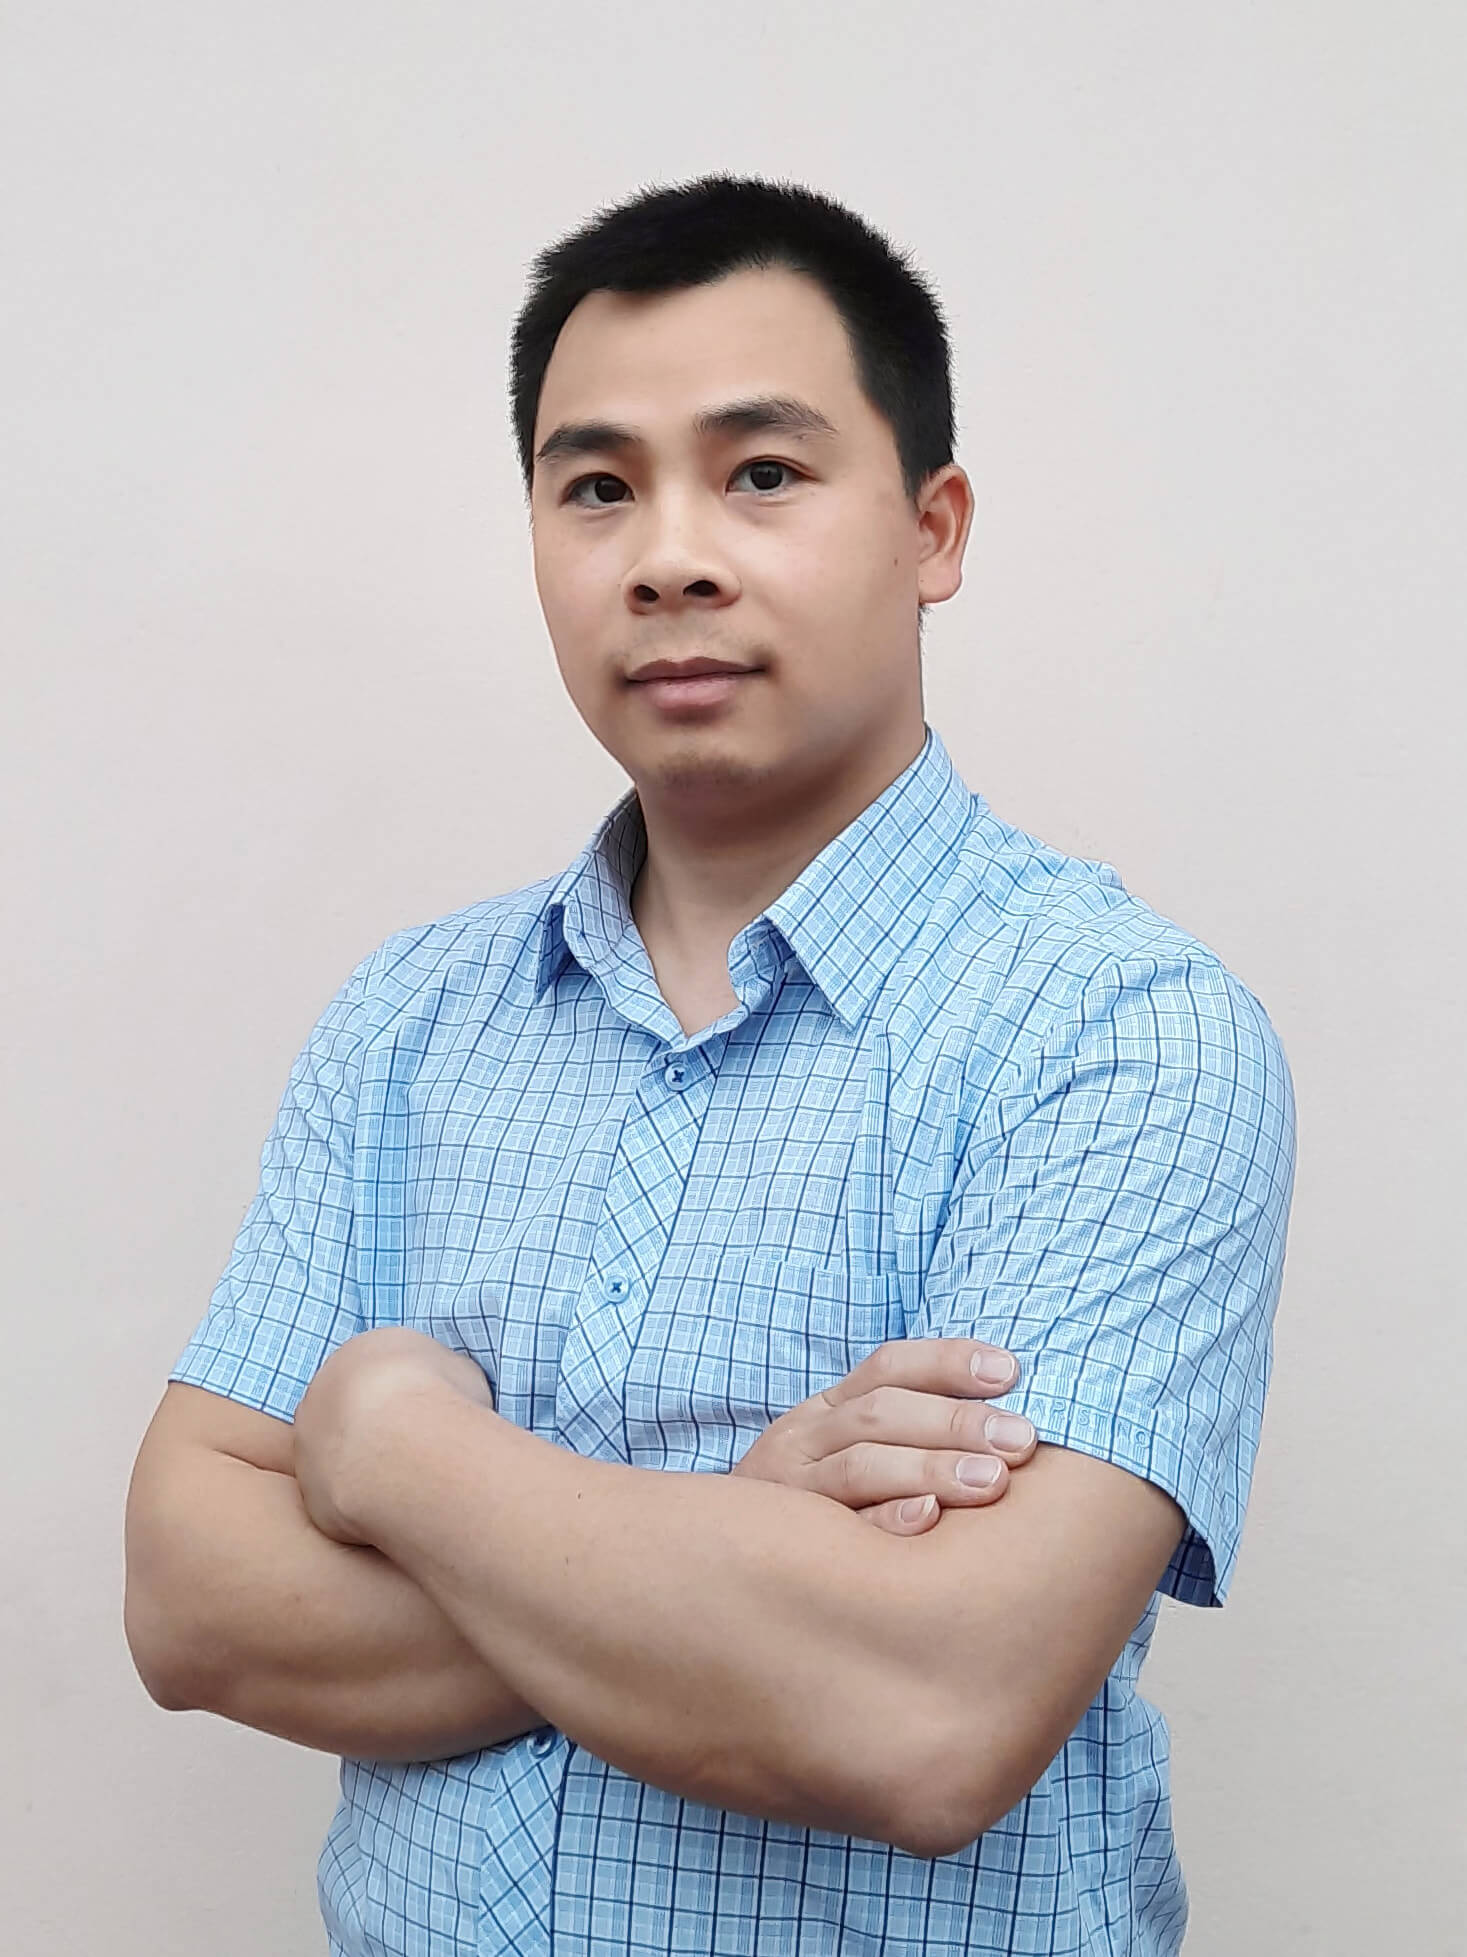 Nguyễn Duy Dần